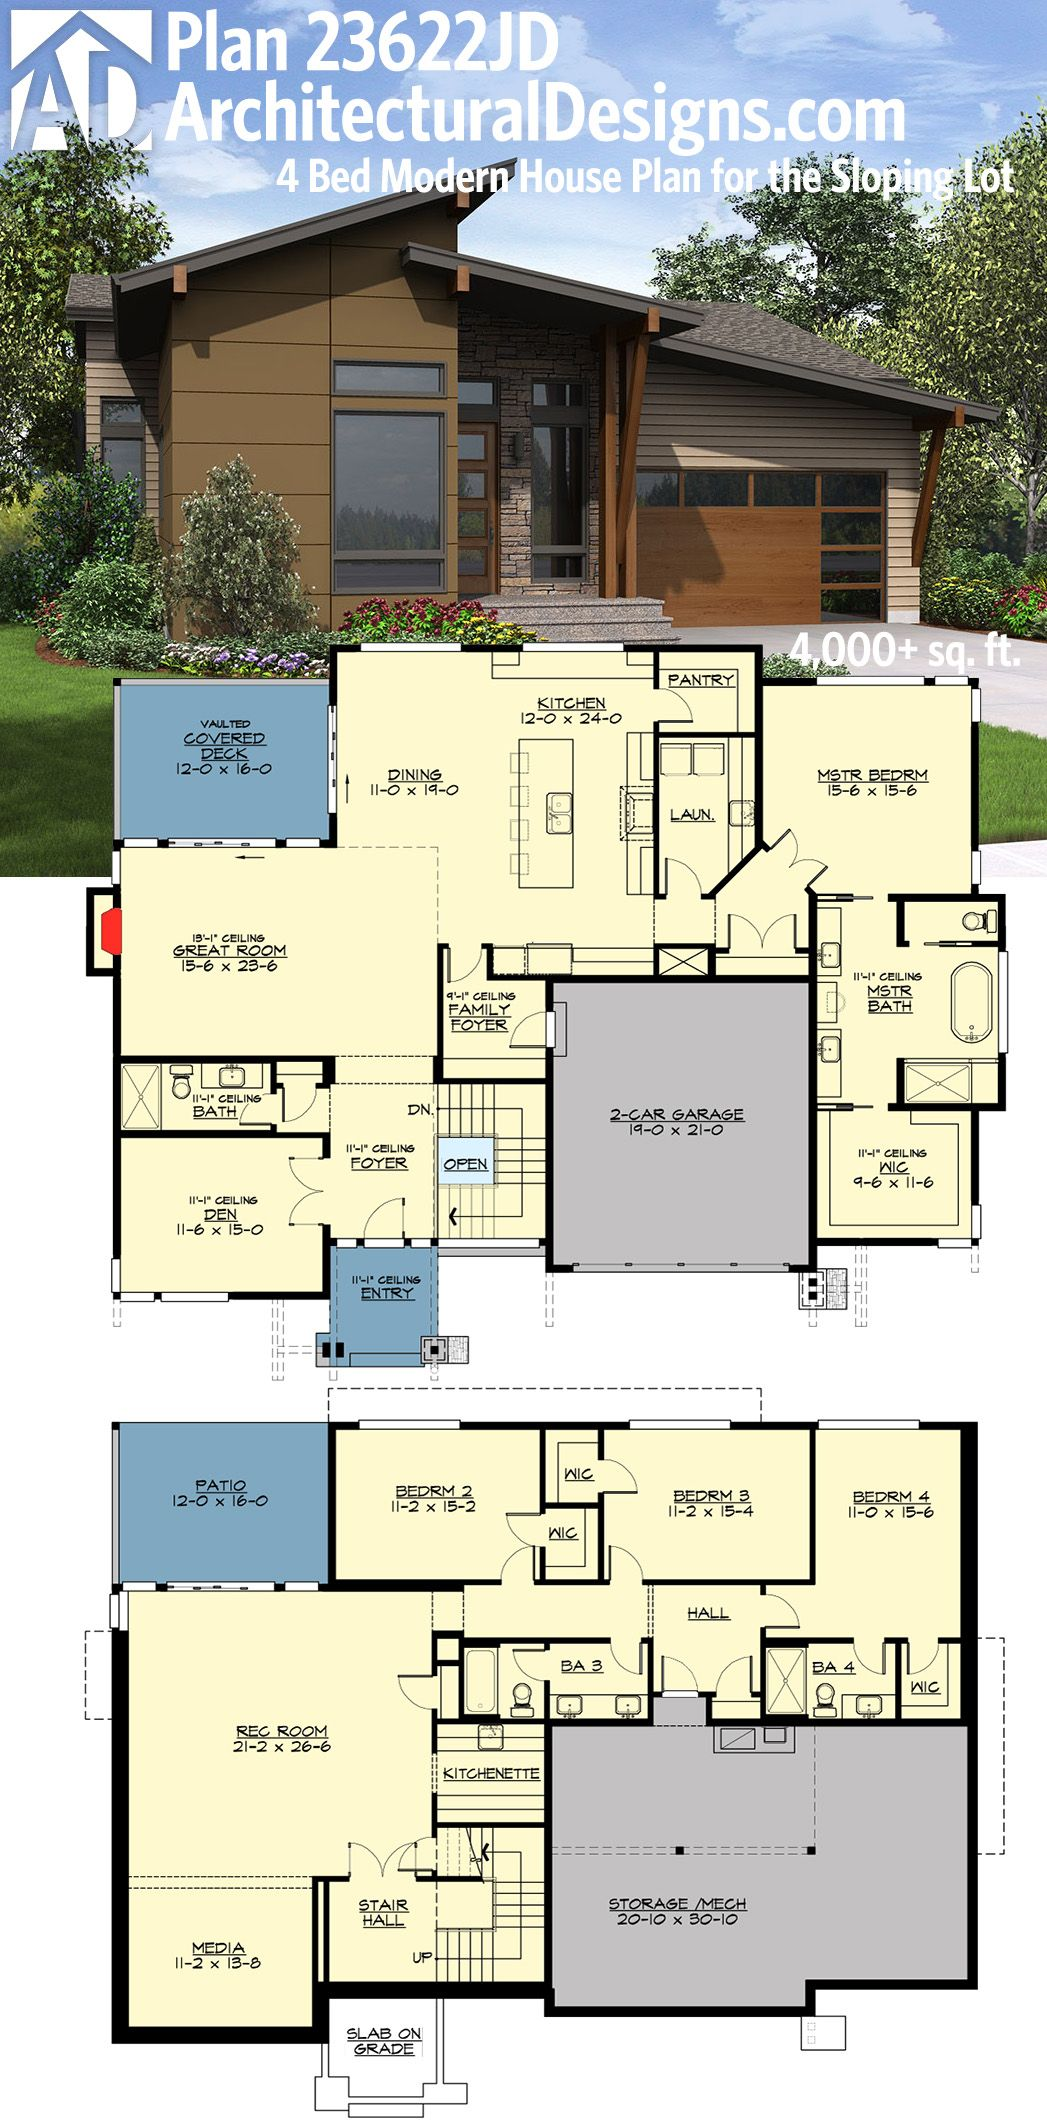 Plan 23622jd 4 Bed Modern House Plan For The Sloping Lot Basement House Plans Architectural Design House Plans Modern House Floor Plans